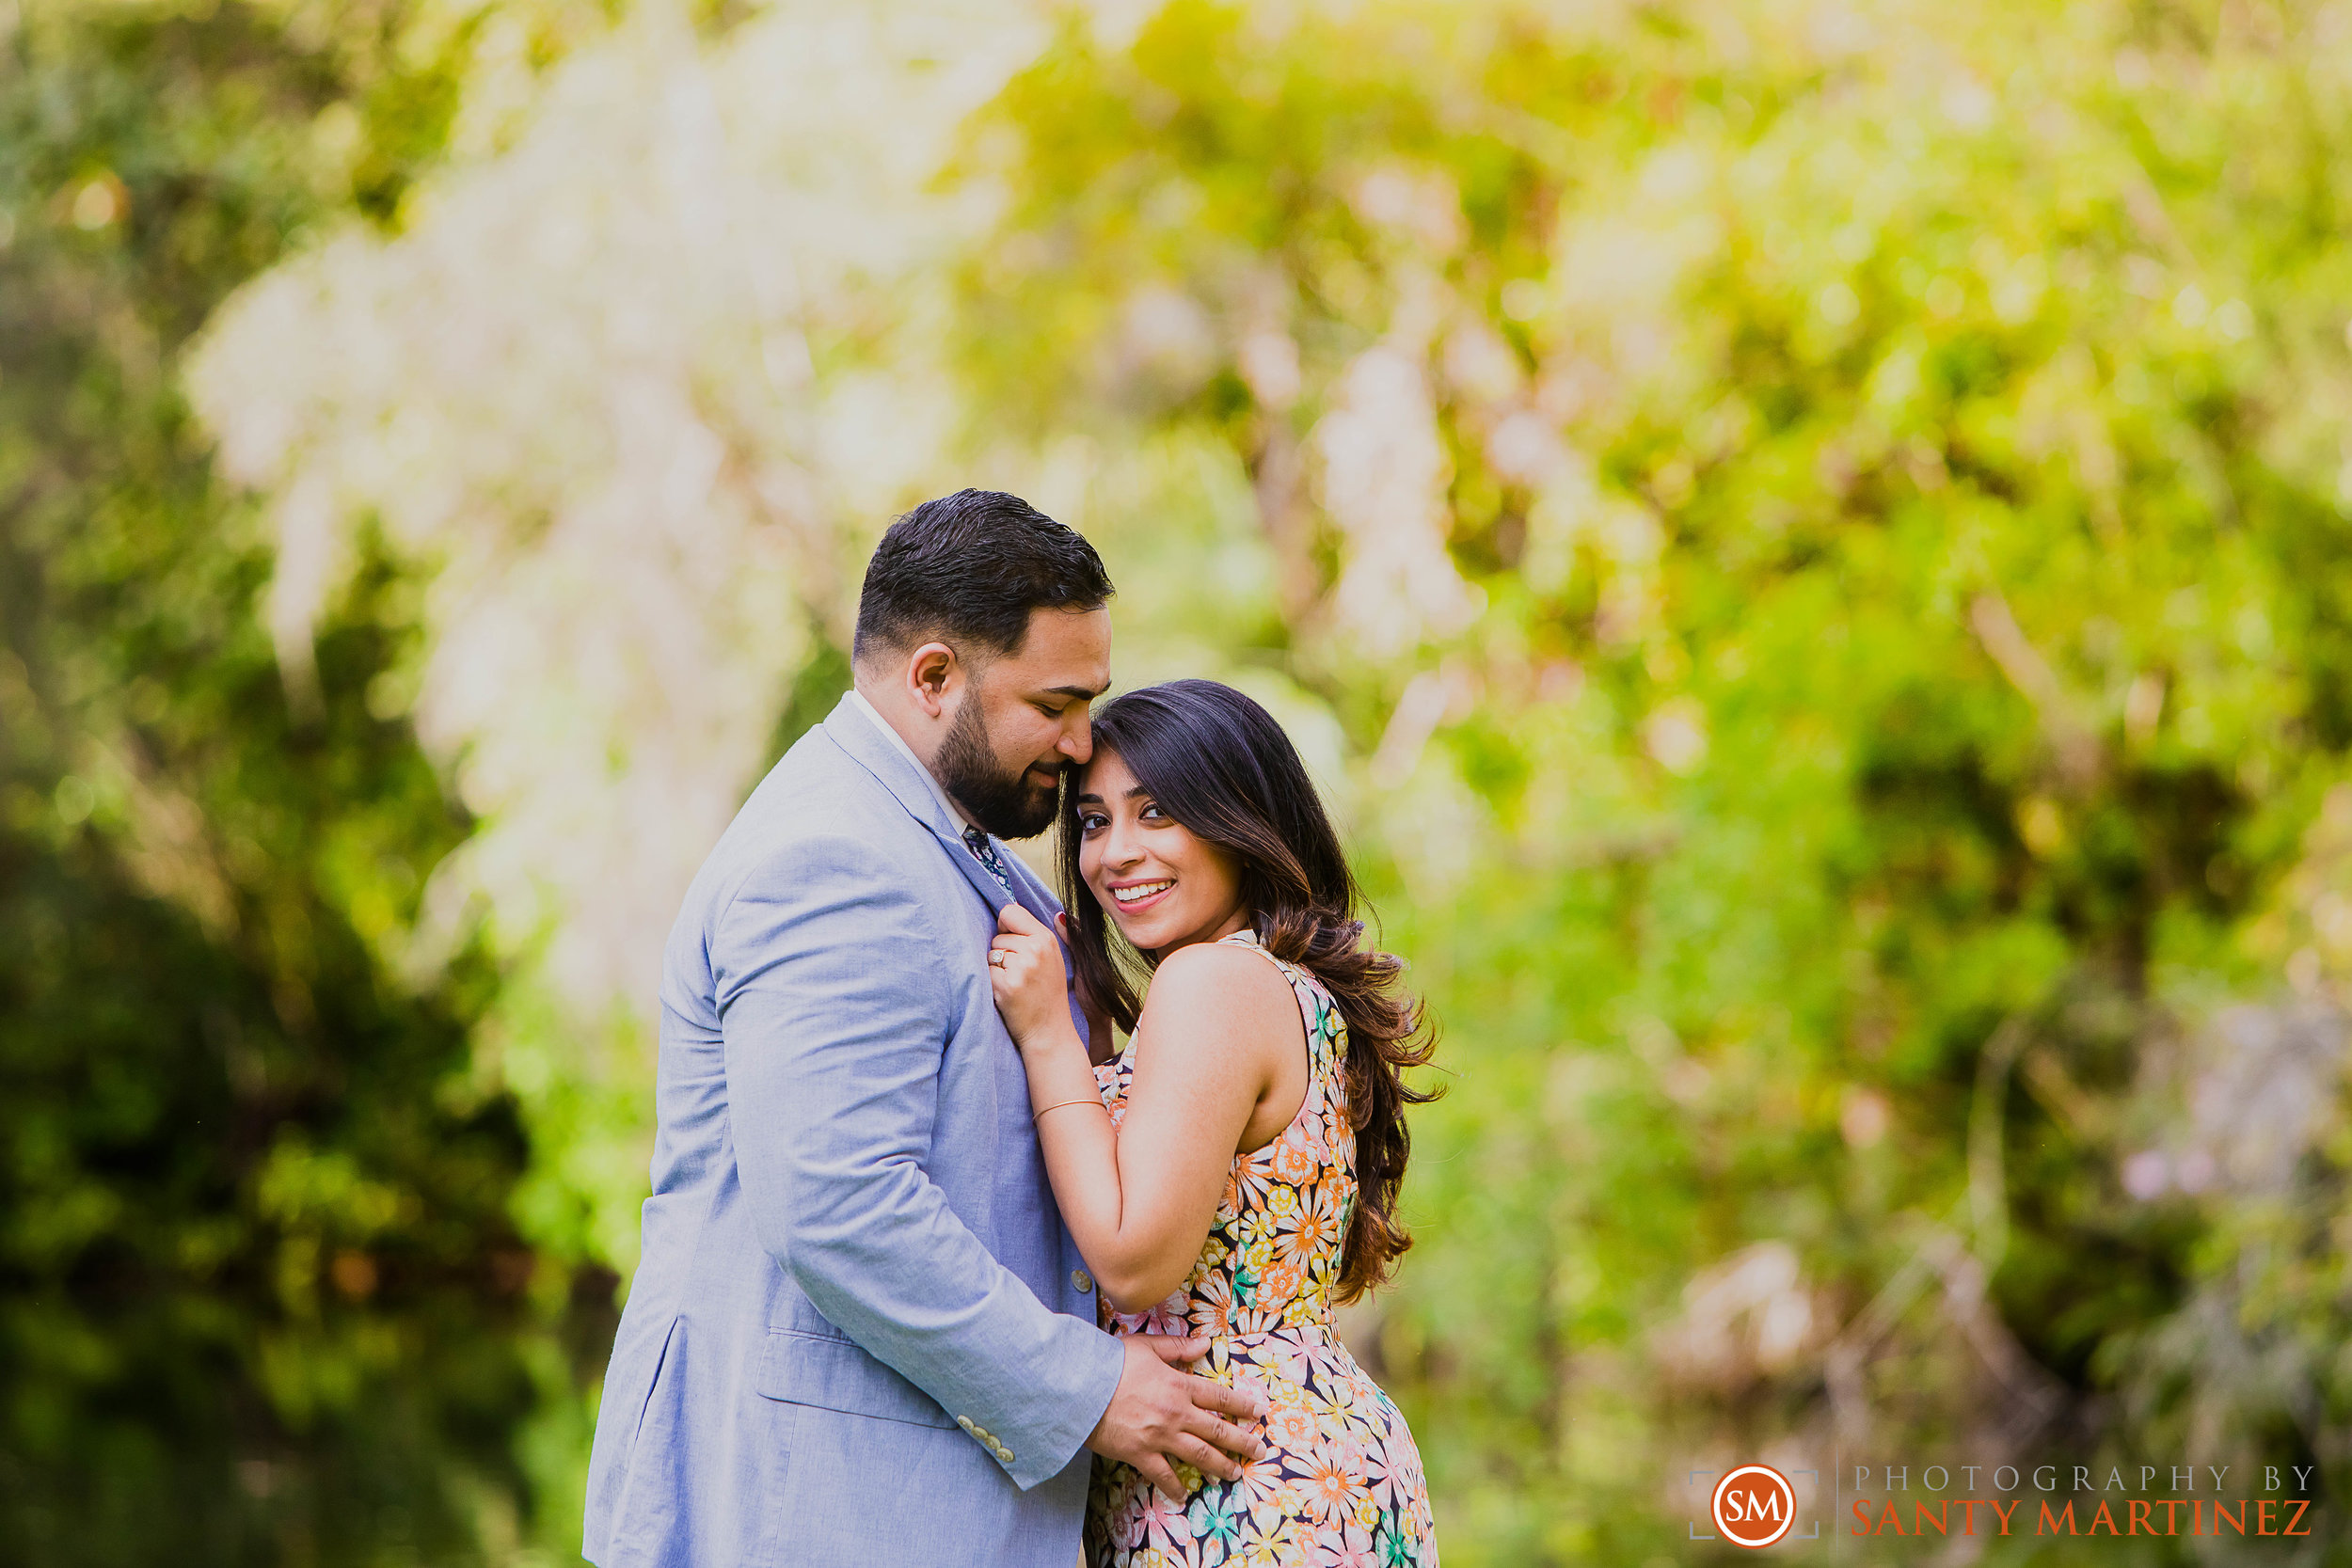 Engagement Session Bok Tower Gardens - Santy Martinez Photography-16.jpg